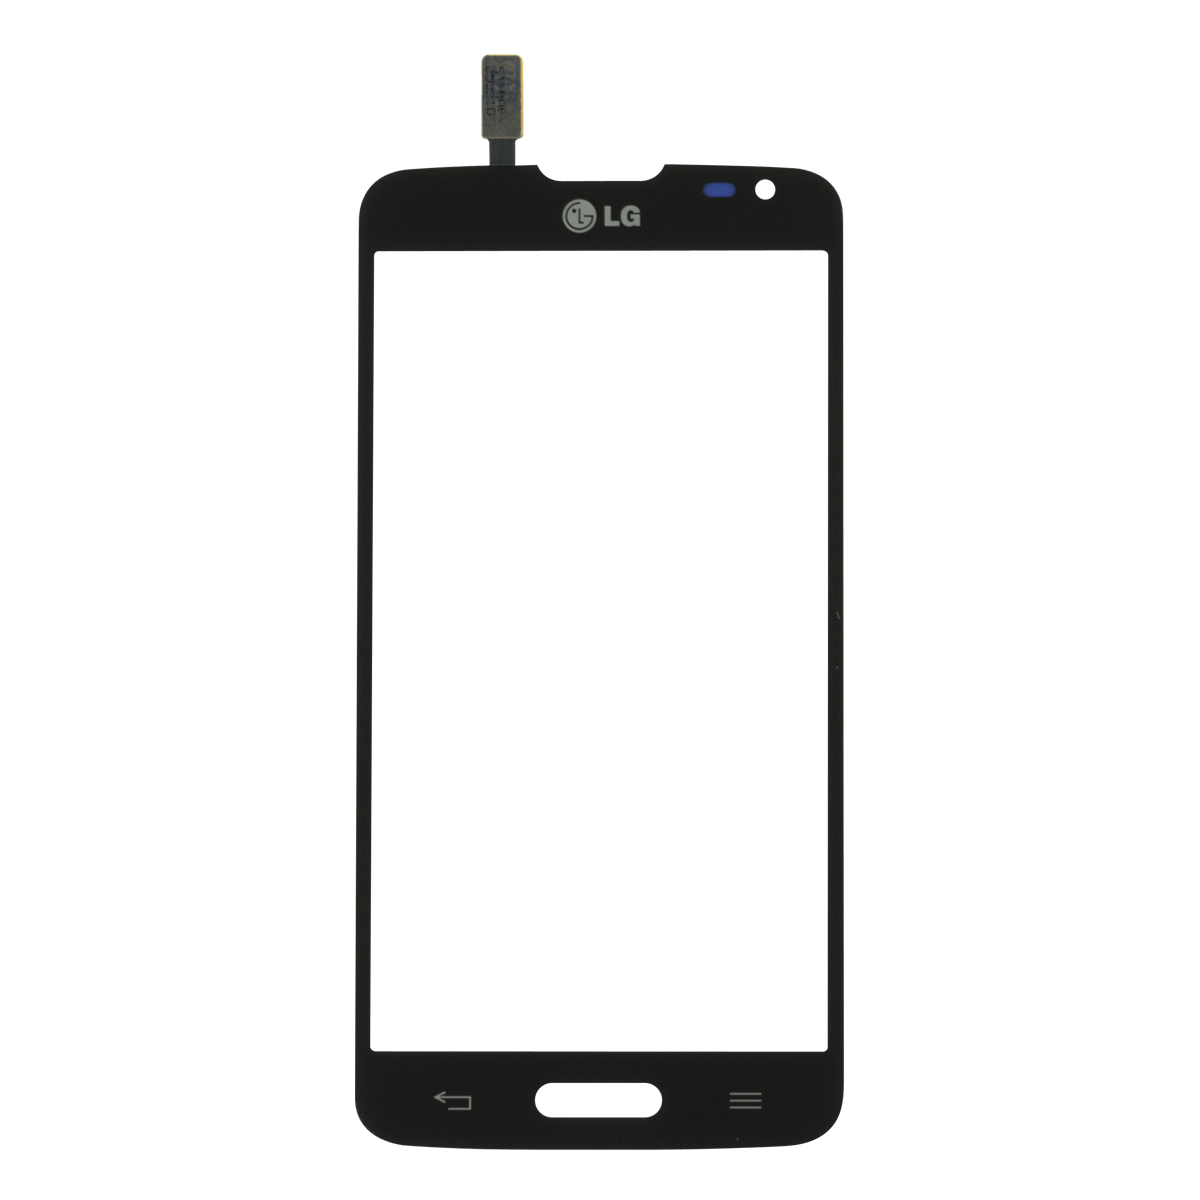 pin backup lg l90! Mobile Hard Reset (Mobile_HardReset) on